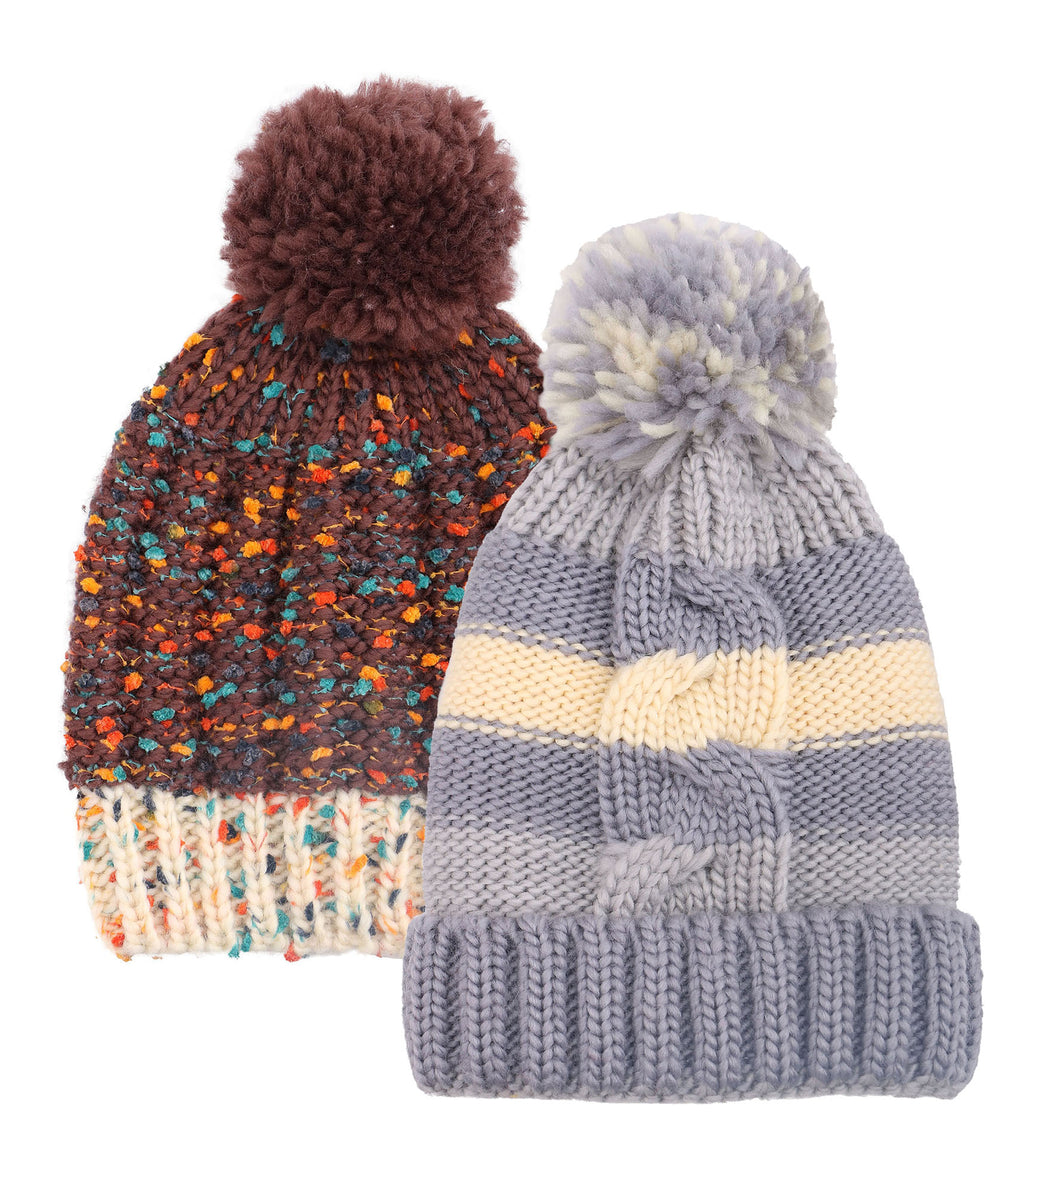 ARCTIC PAW Kids Chunky Cable Knit Beanie Winter Hat Ski Cap, Brown/Grey Stripe